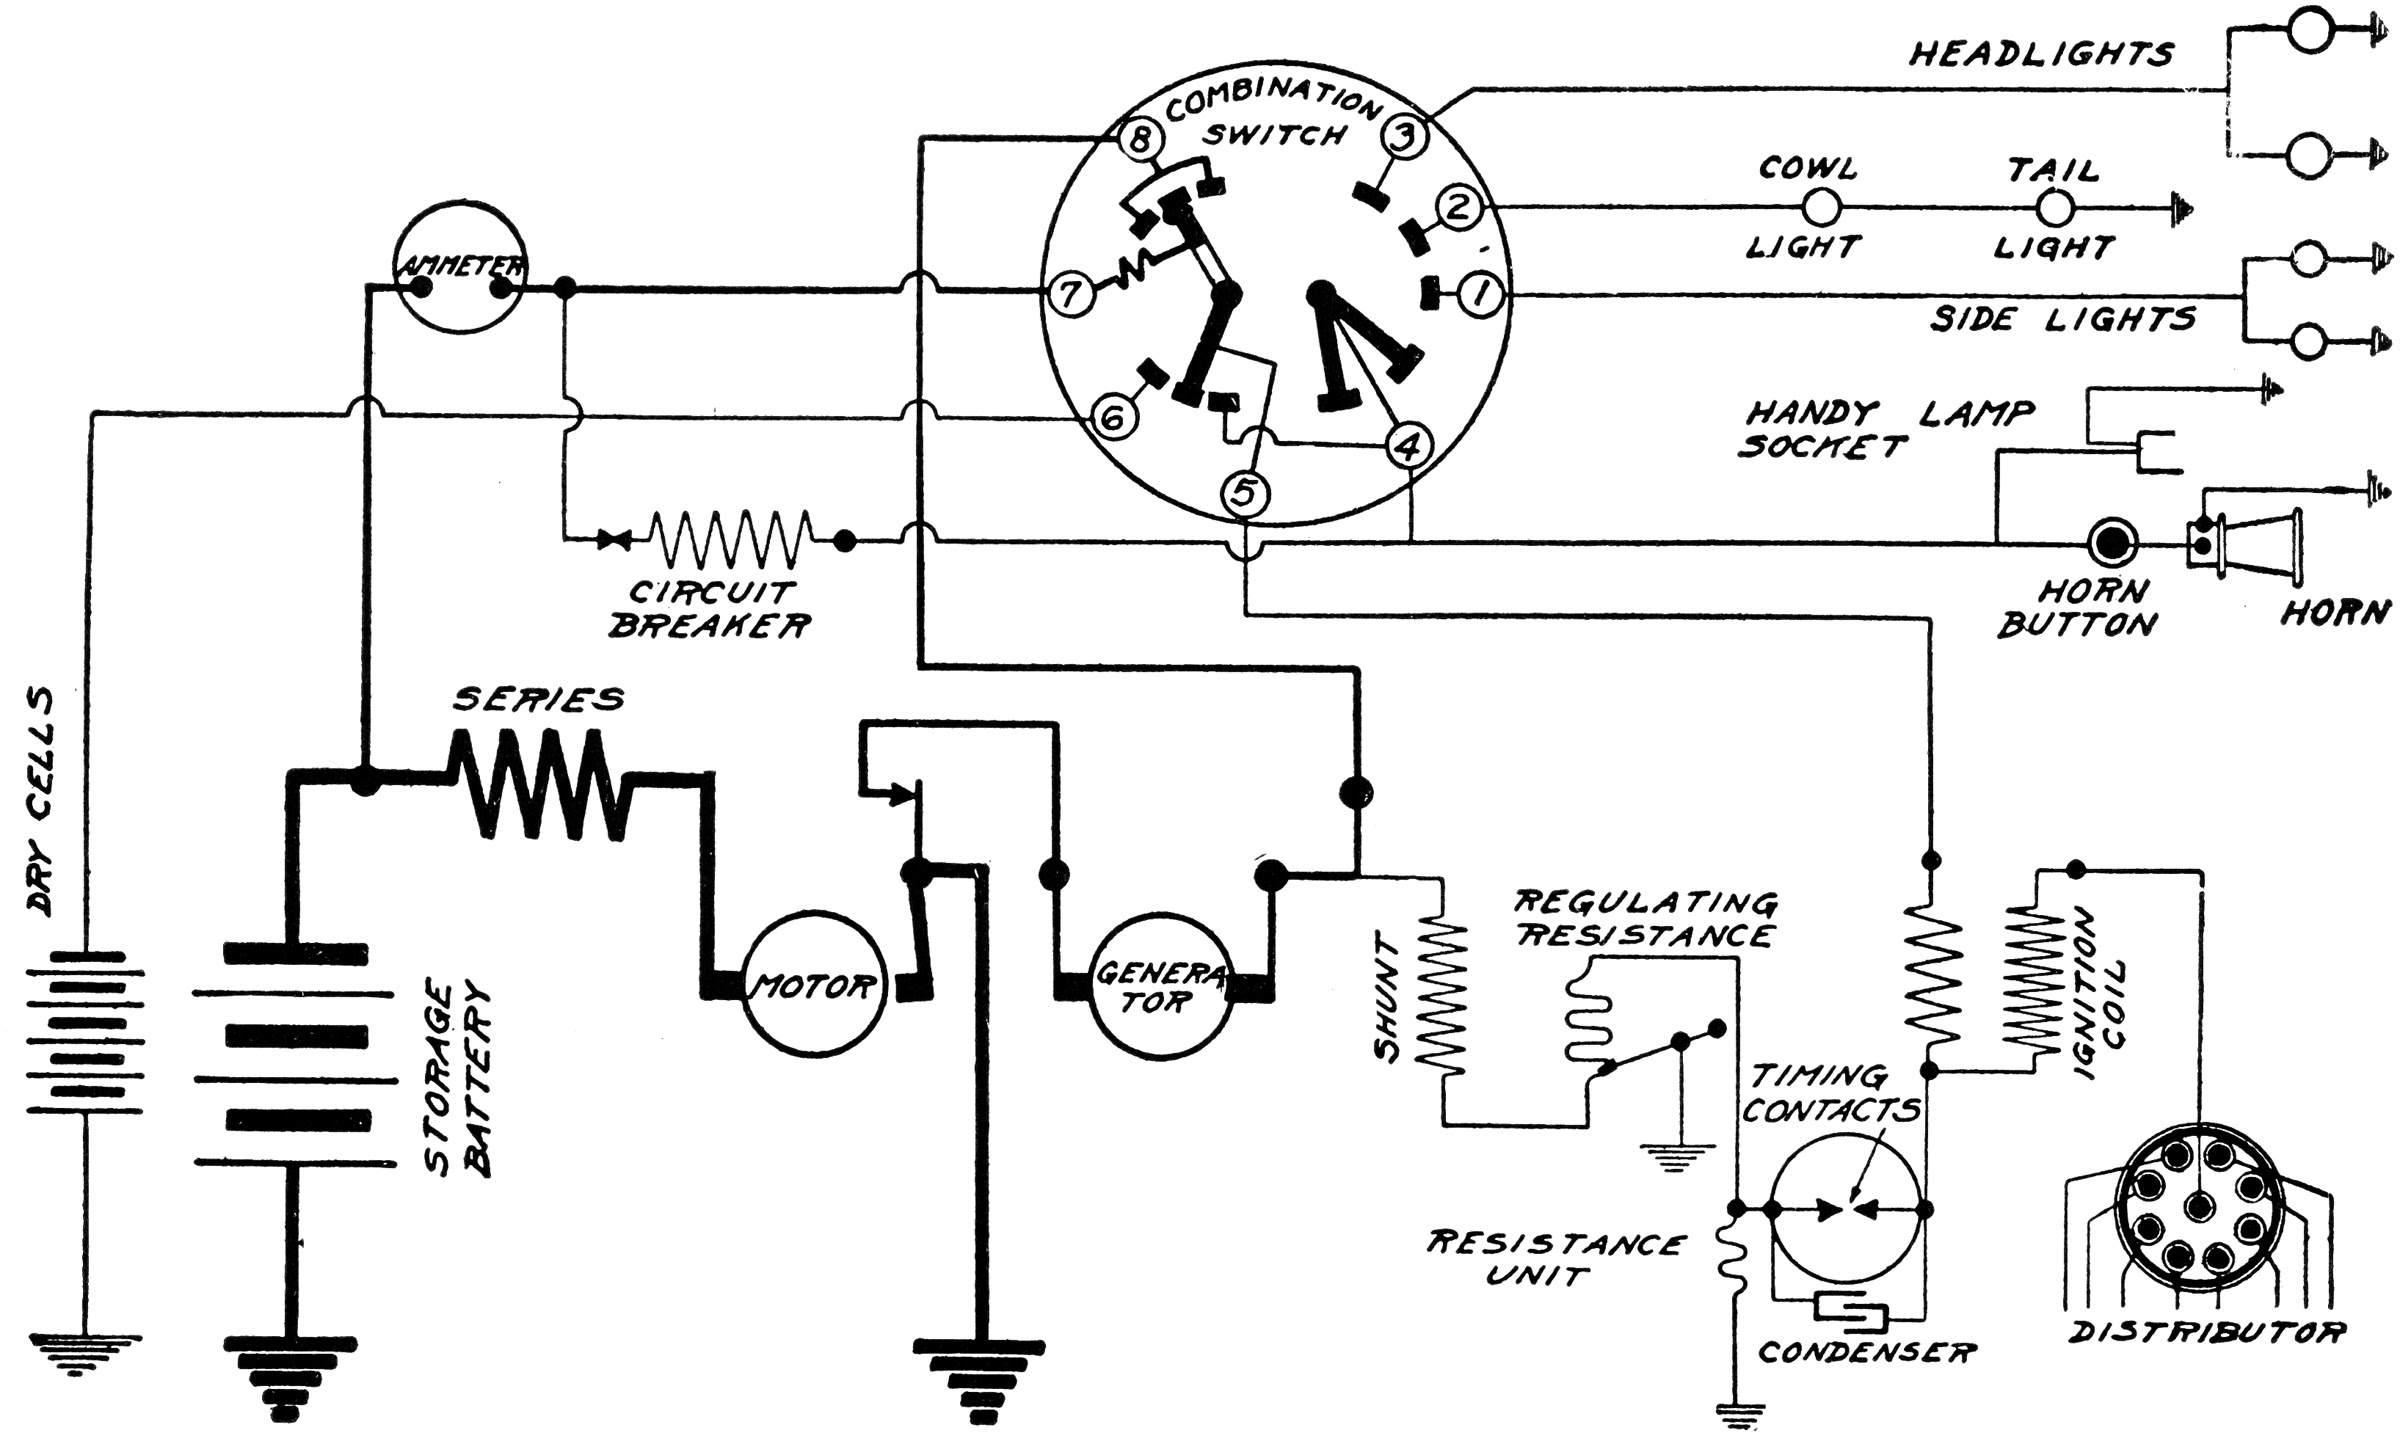 20 Lovely Farmall H Light Switch Wiring Diagram